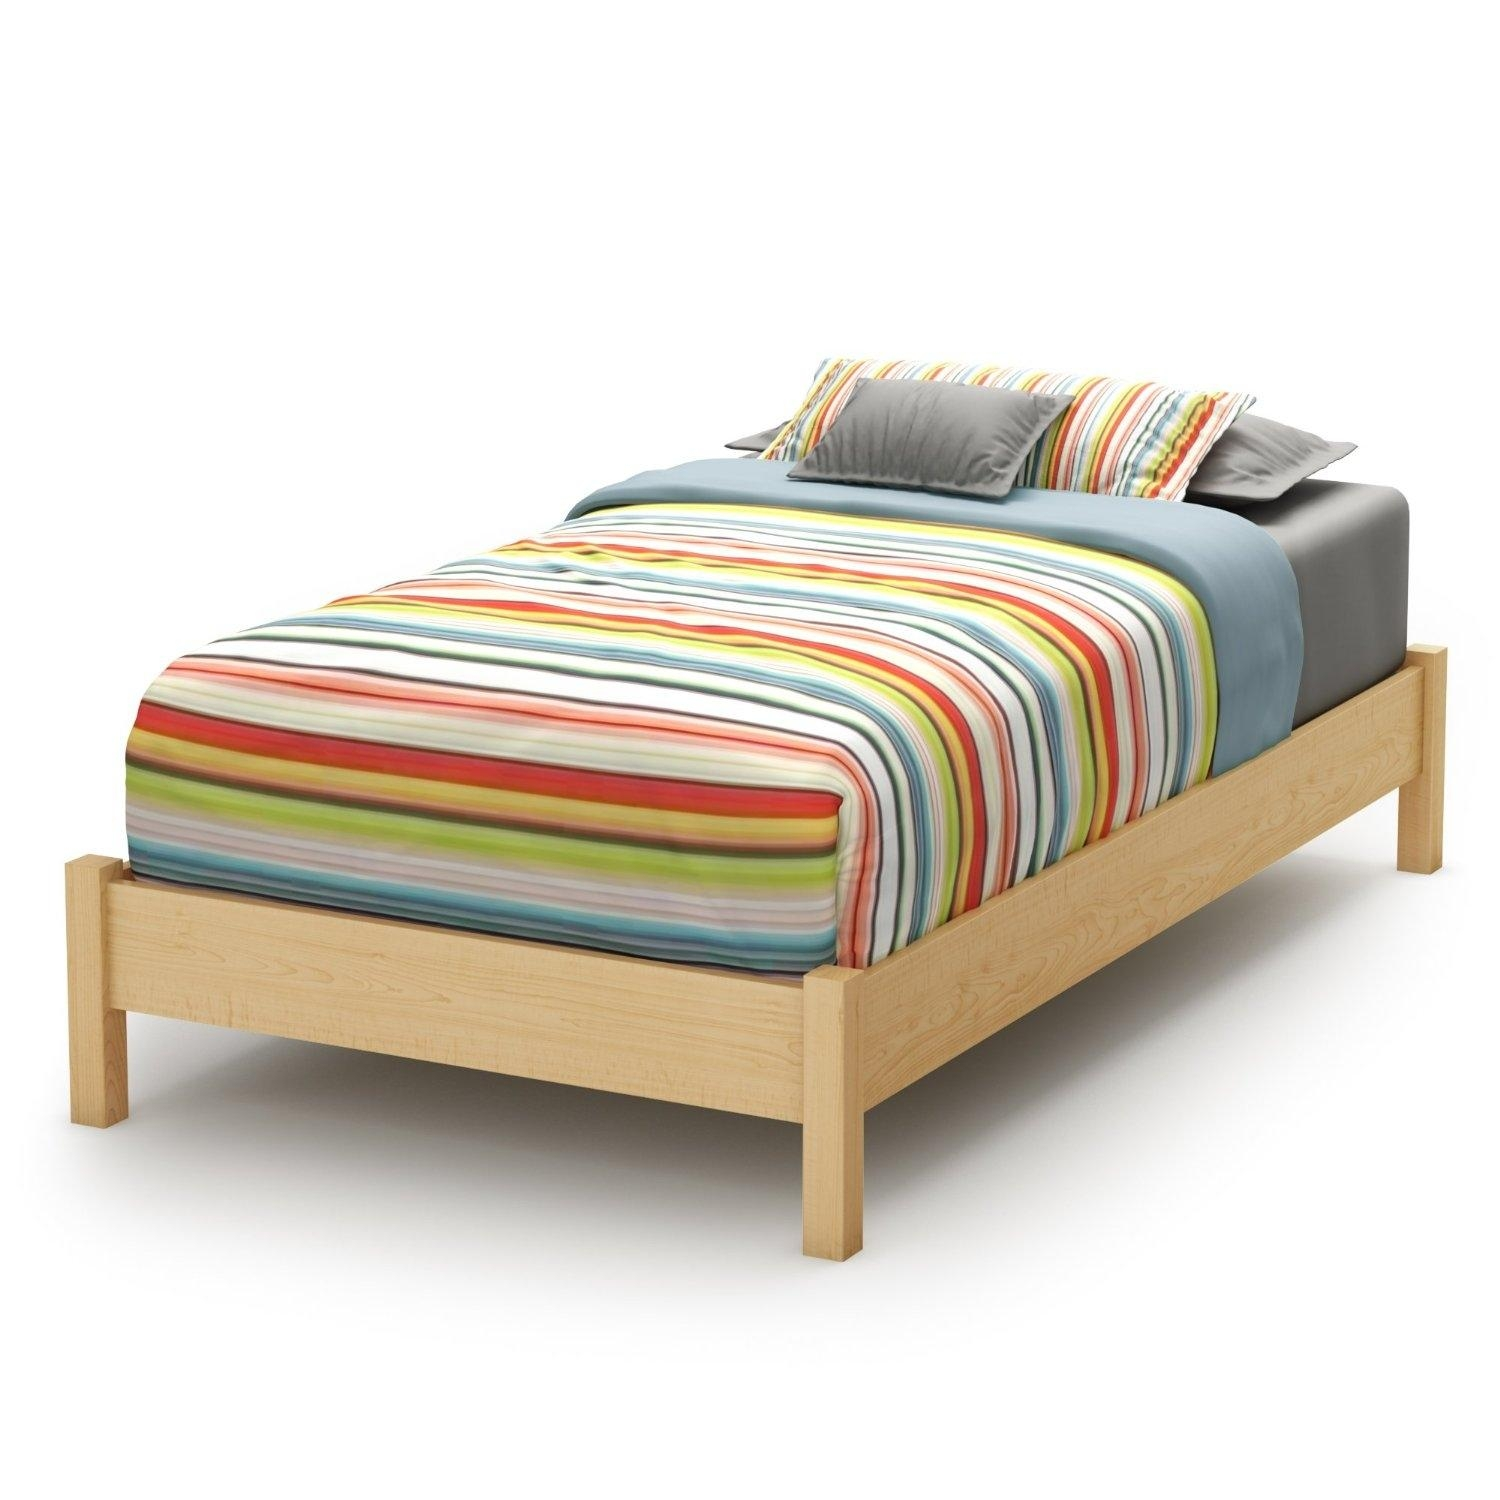 Creative Twin Bed Frames